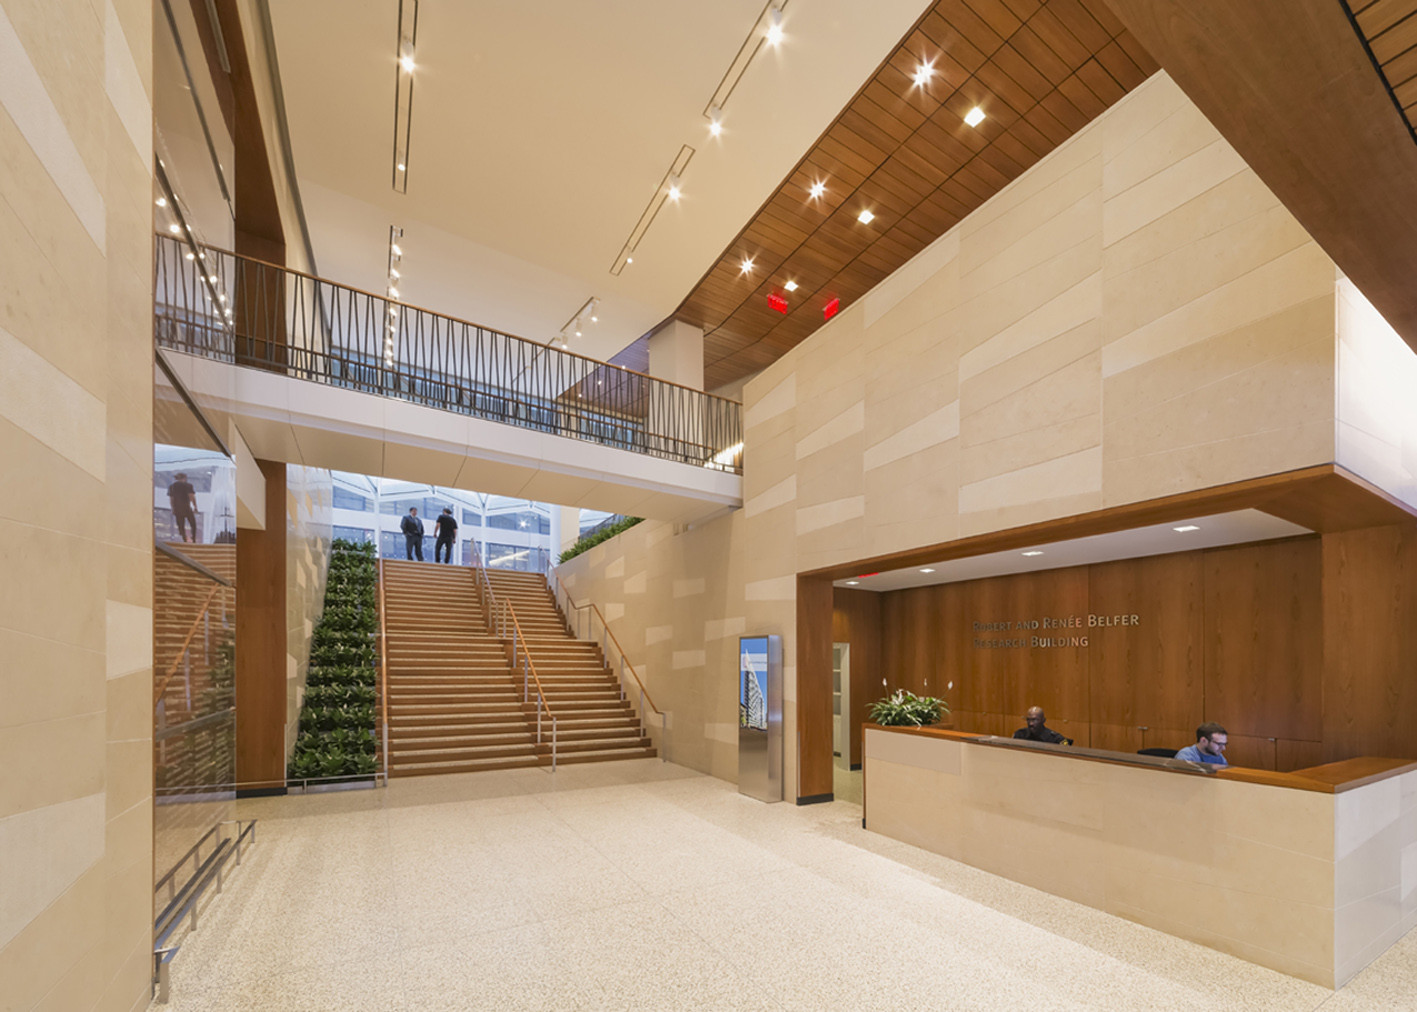 Gallery Of Weill Cornell Medical College Belfer Research